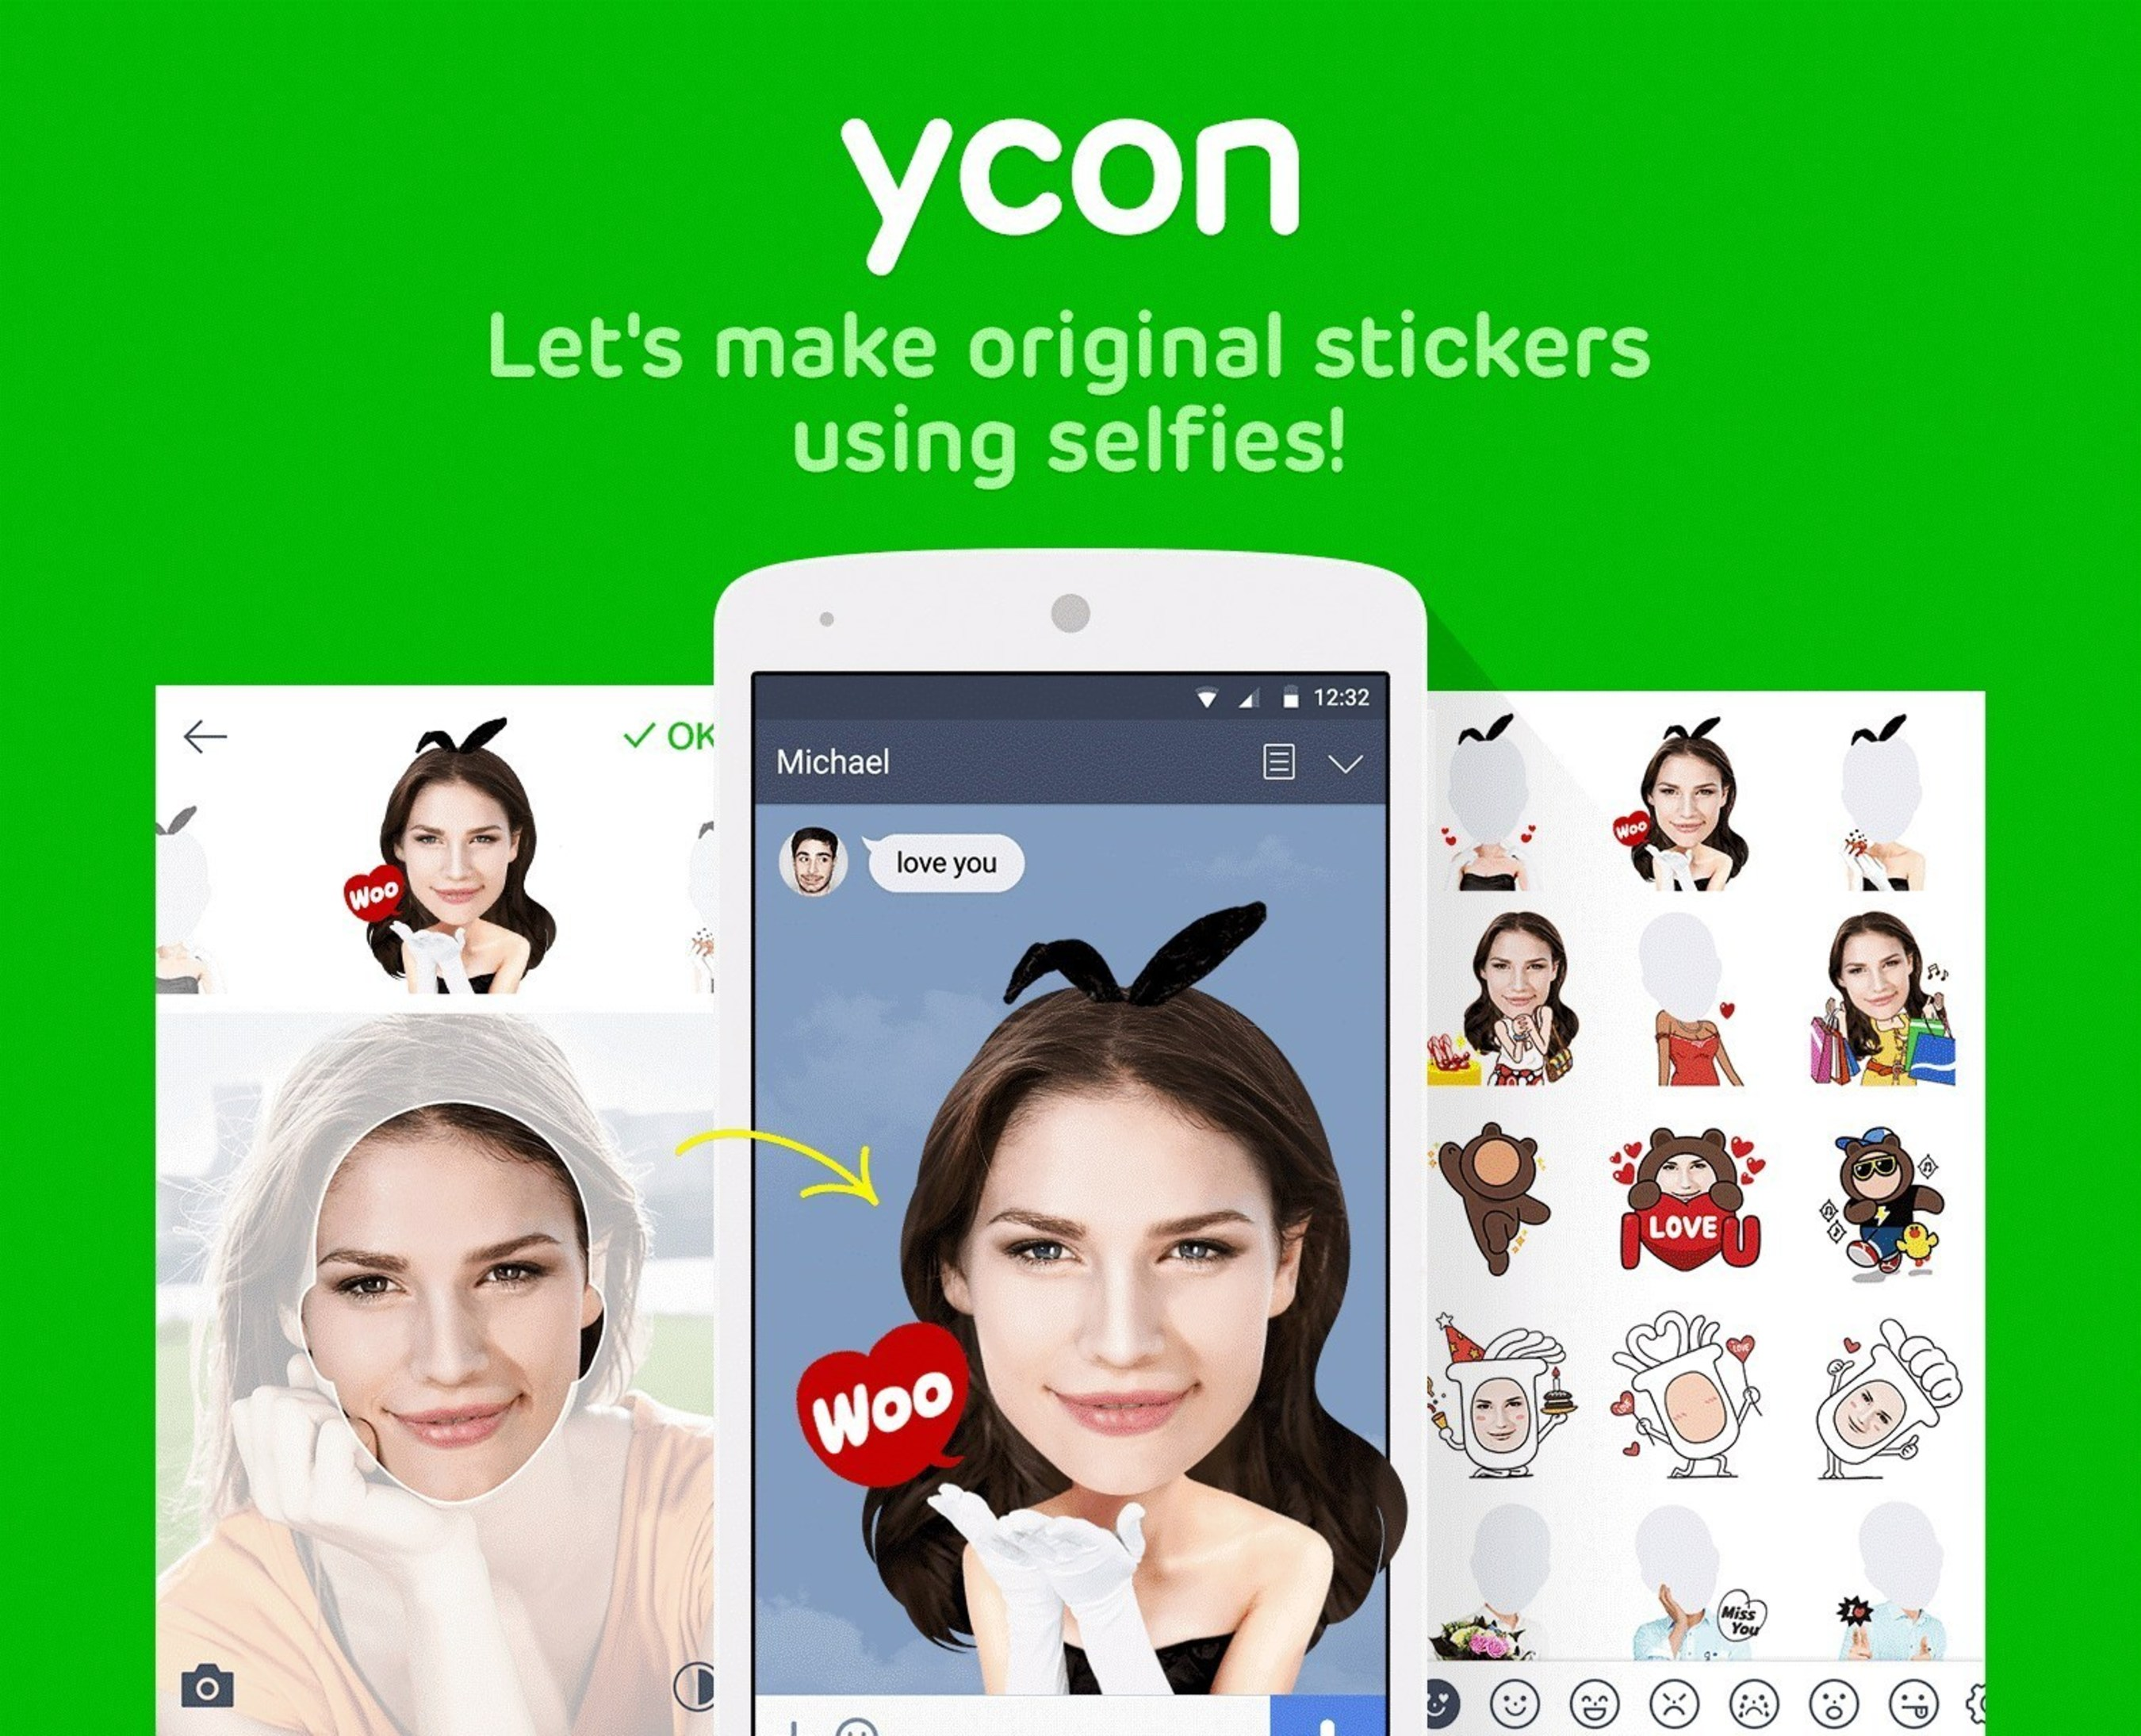 LINE Officially Launches Selfie Sticker Creation App 'ycon'